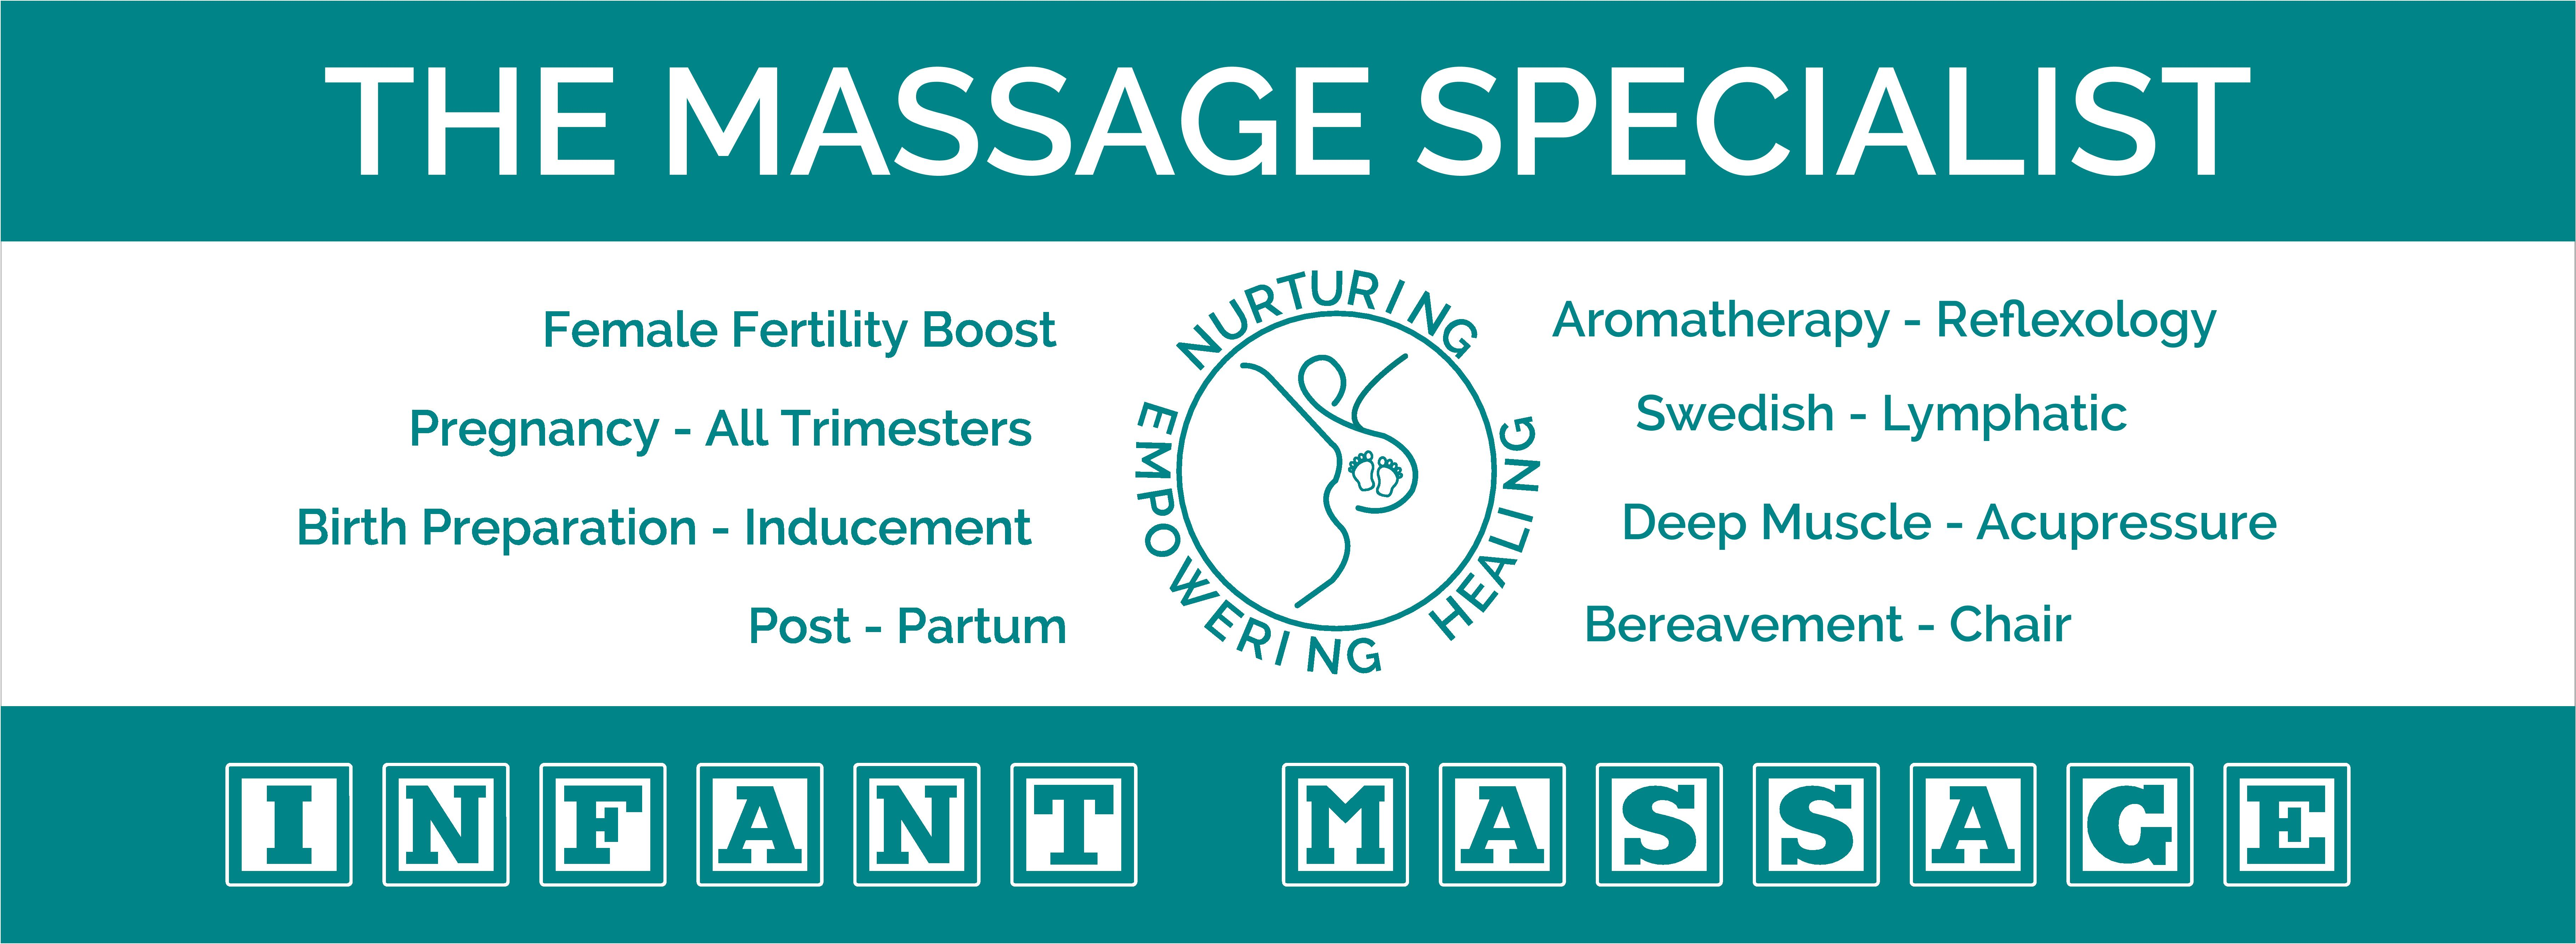 The Massage Specialist